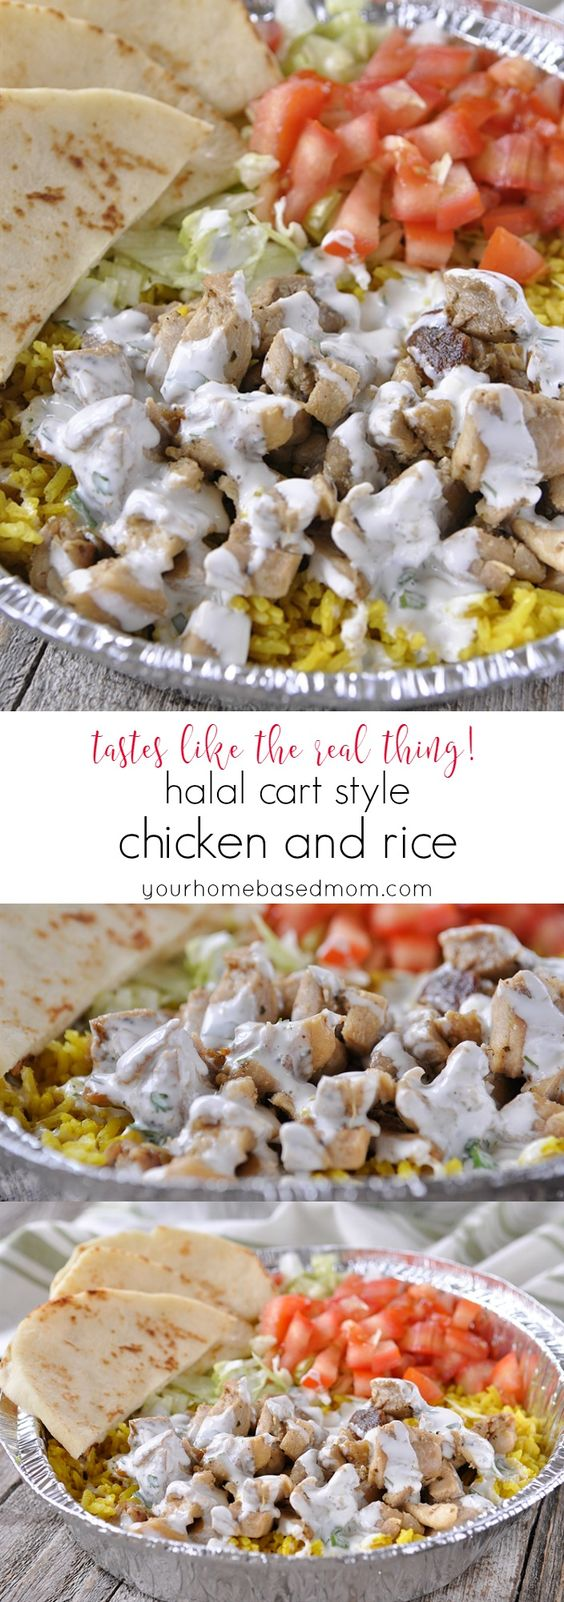 Halal Cart Style Chicken and Rice - tastes like the real thing!